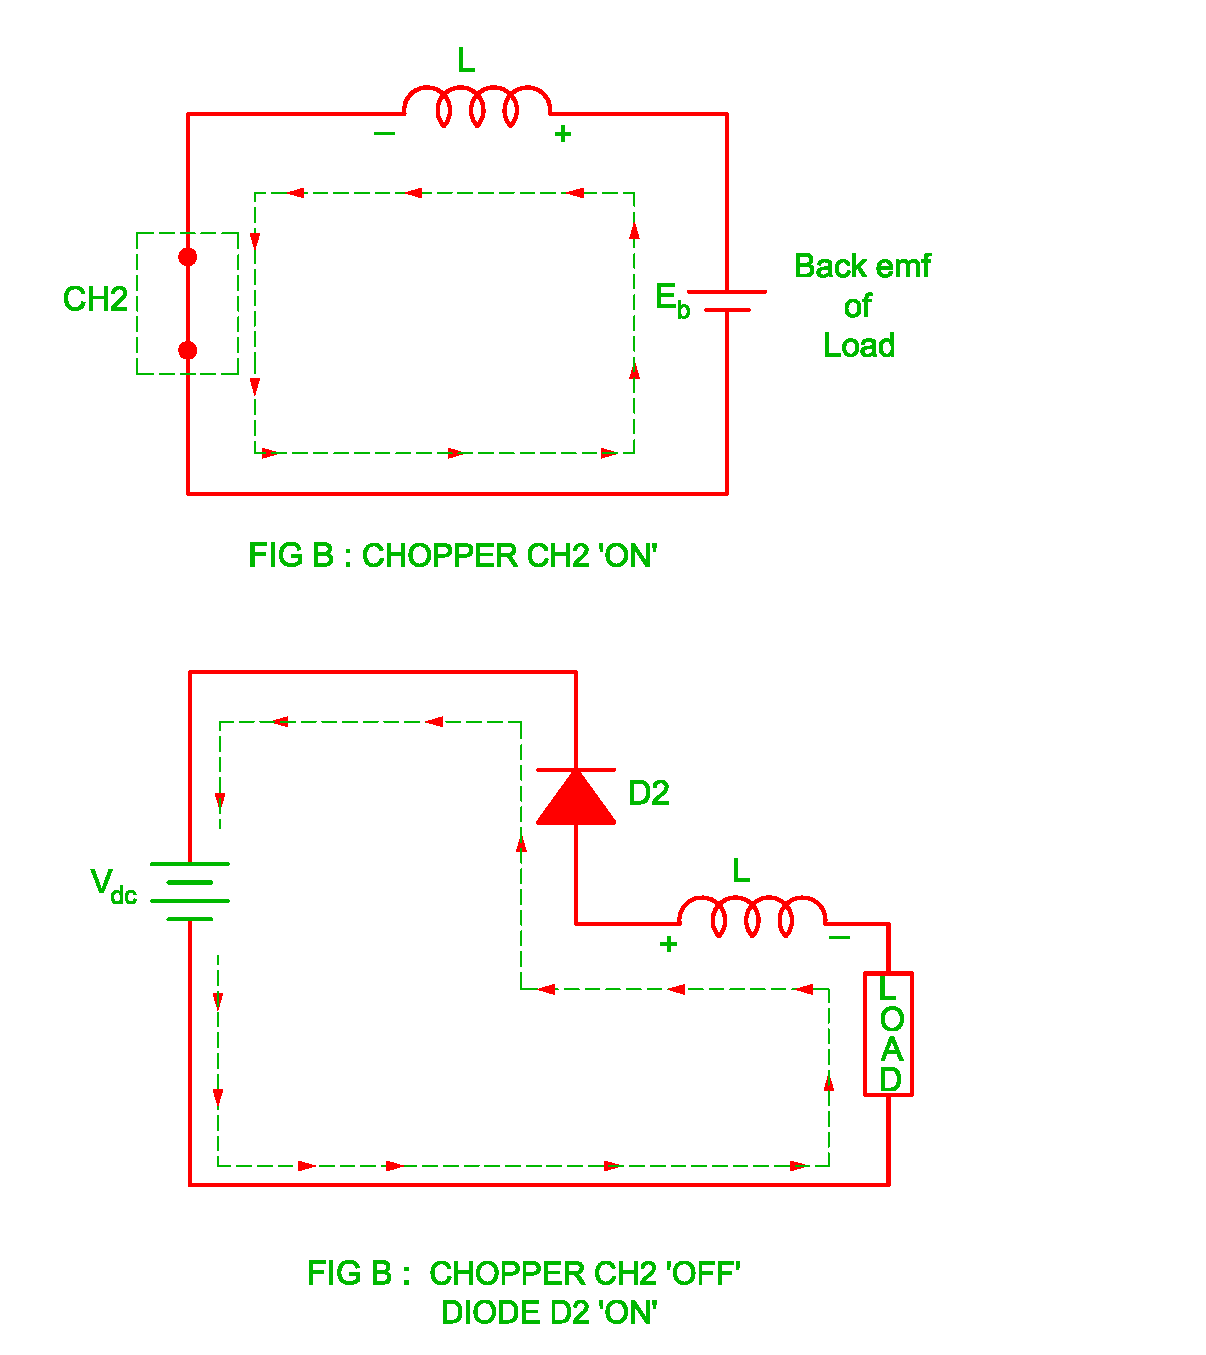 Chopper Diagram Diode Wiring Sample 2005 Sterling Acterra Diagrams Type C Class Electrical Revolution Symbol